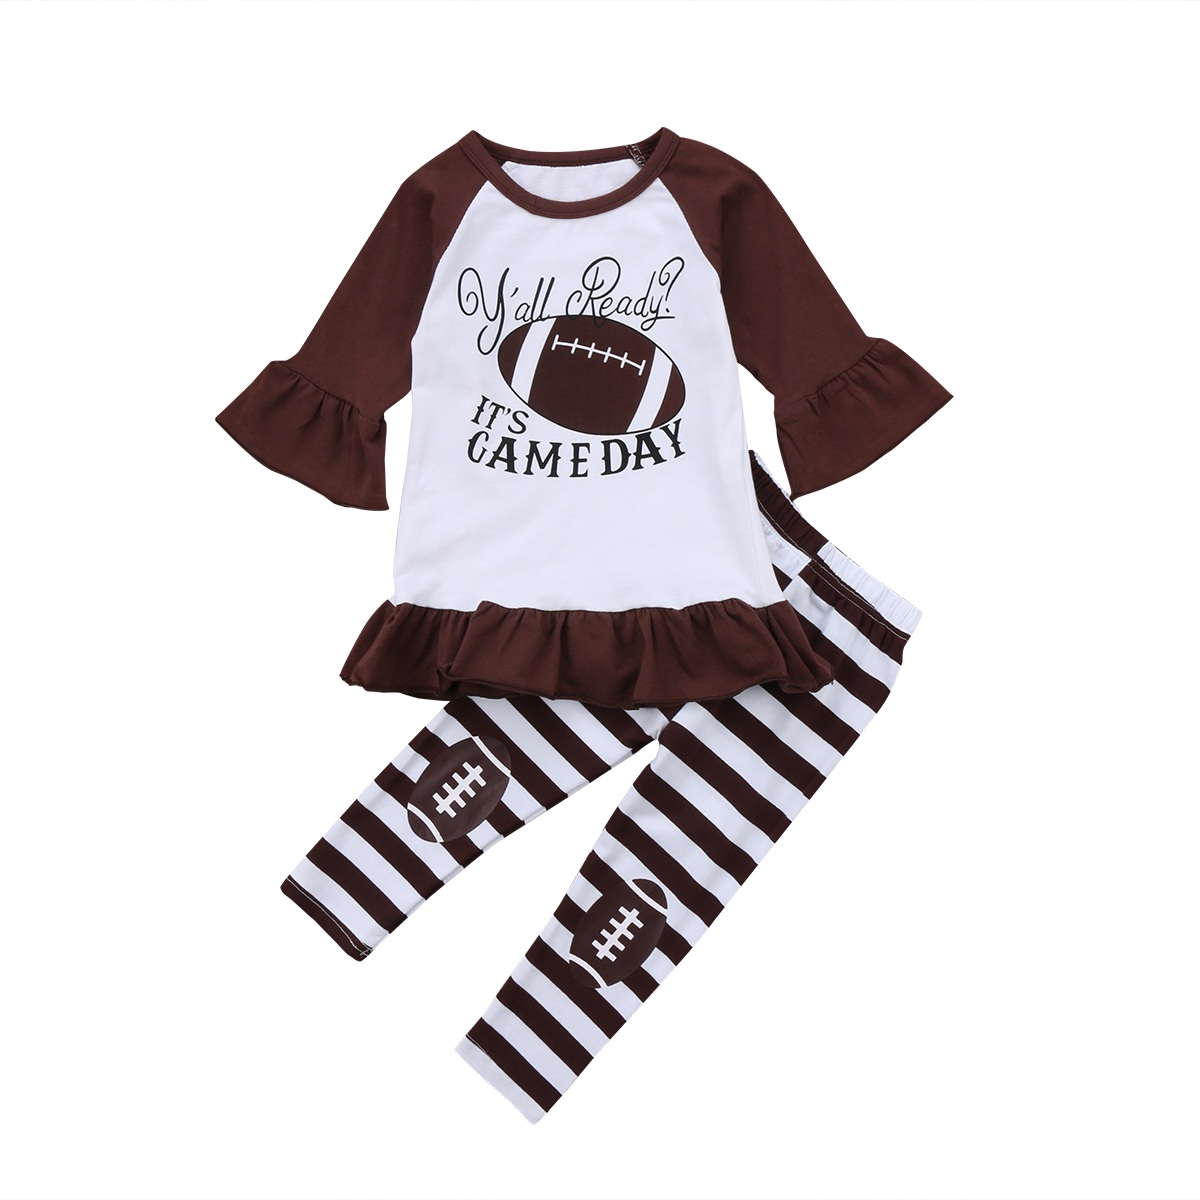 Fashion Toddler Kids Baby Girl Dress Rugby Tops+ Striped Pants 2pcs Clothes Set Outfit